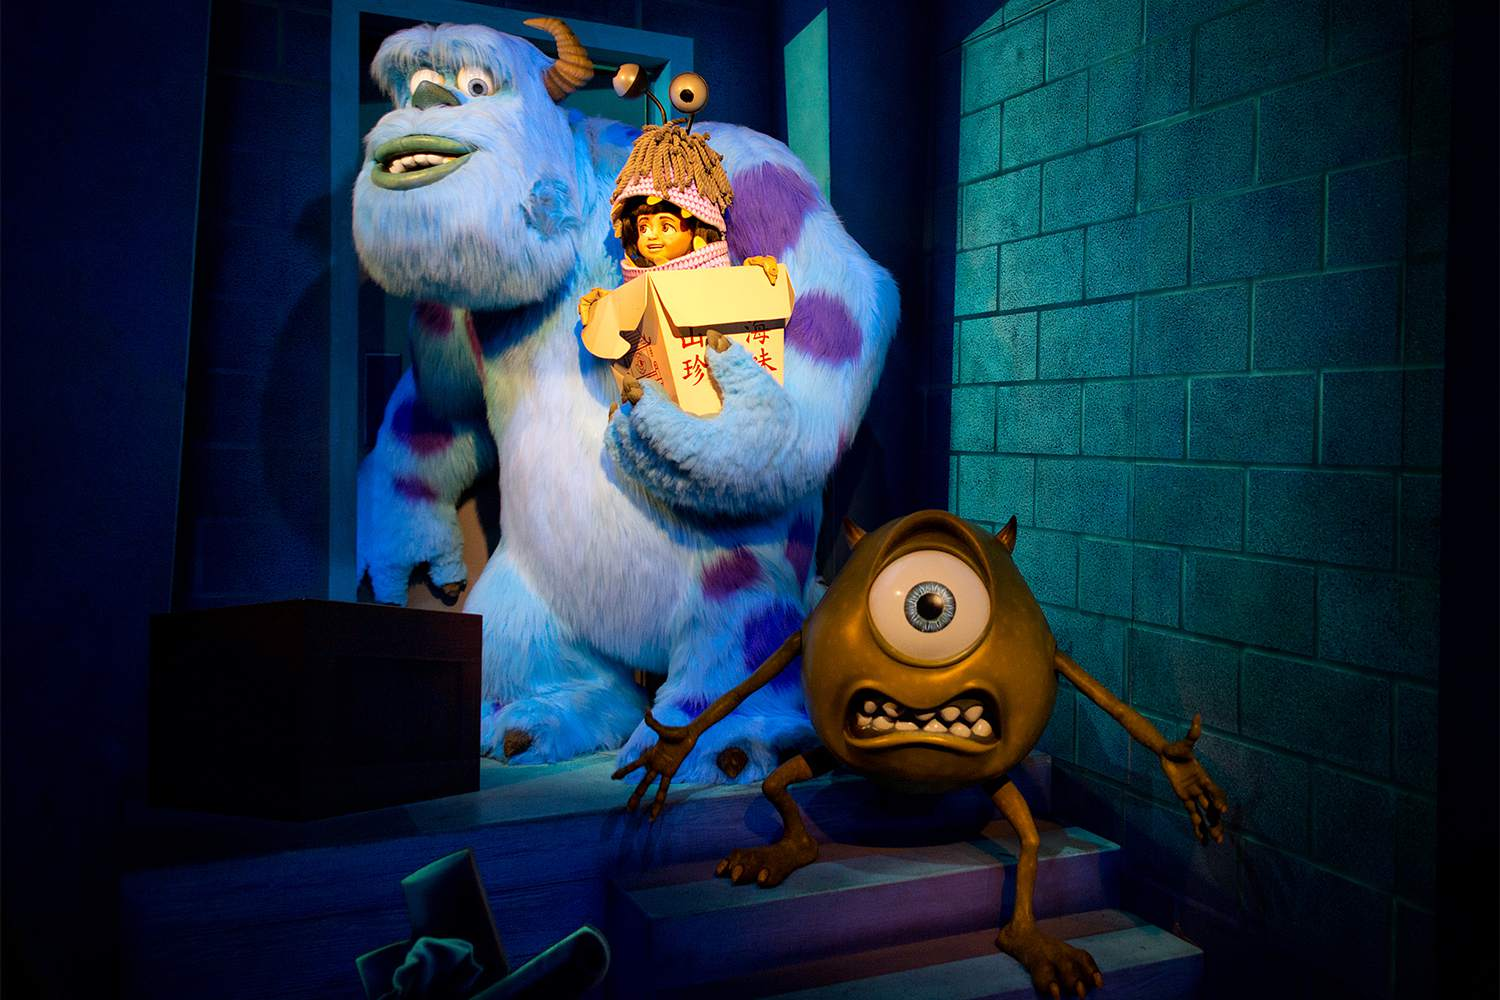 875a2b6b4 Monsters Inc. Ride at Disneyland